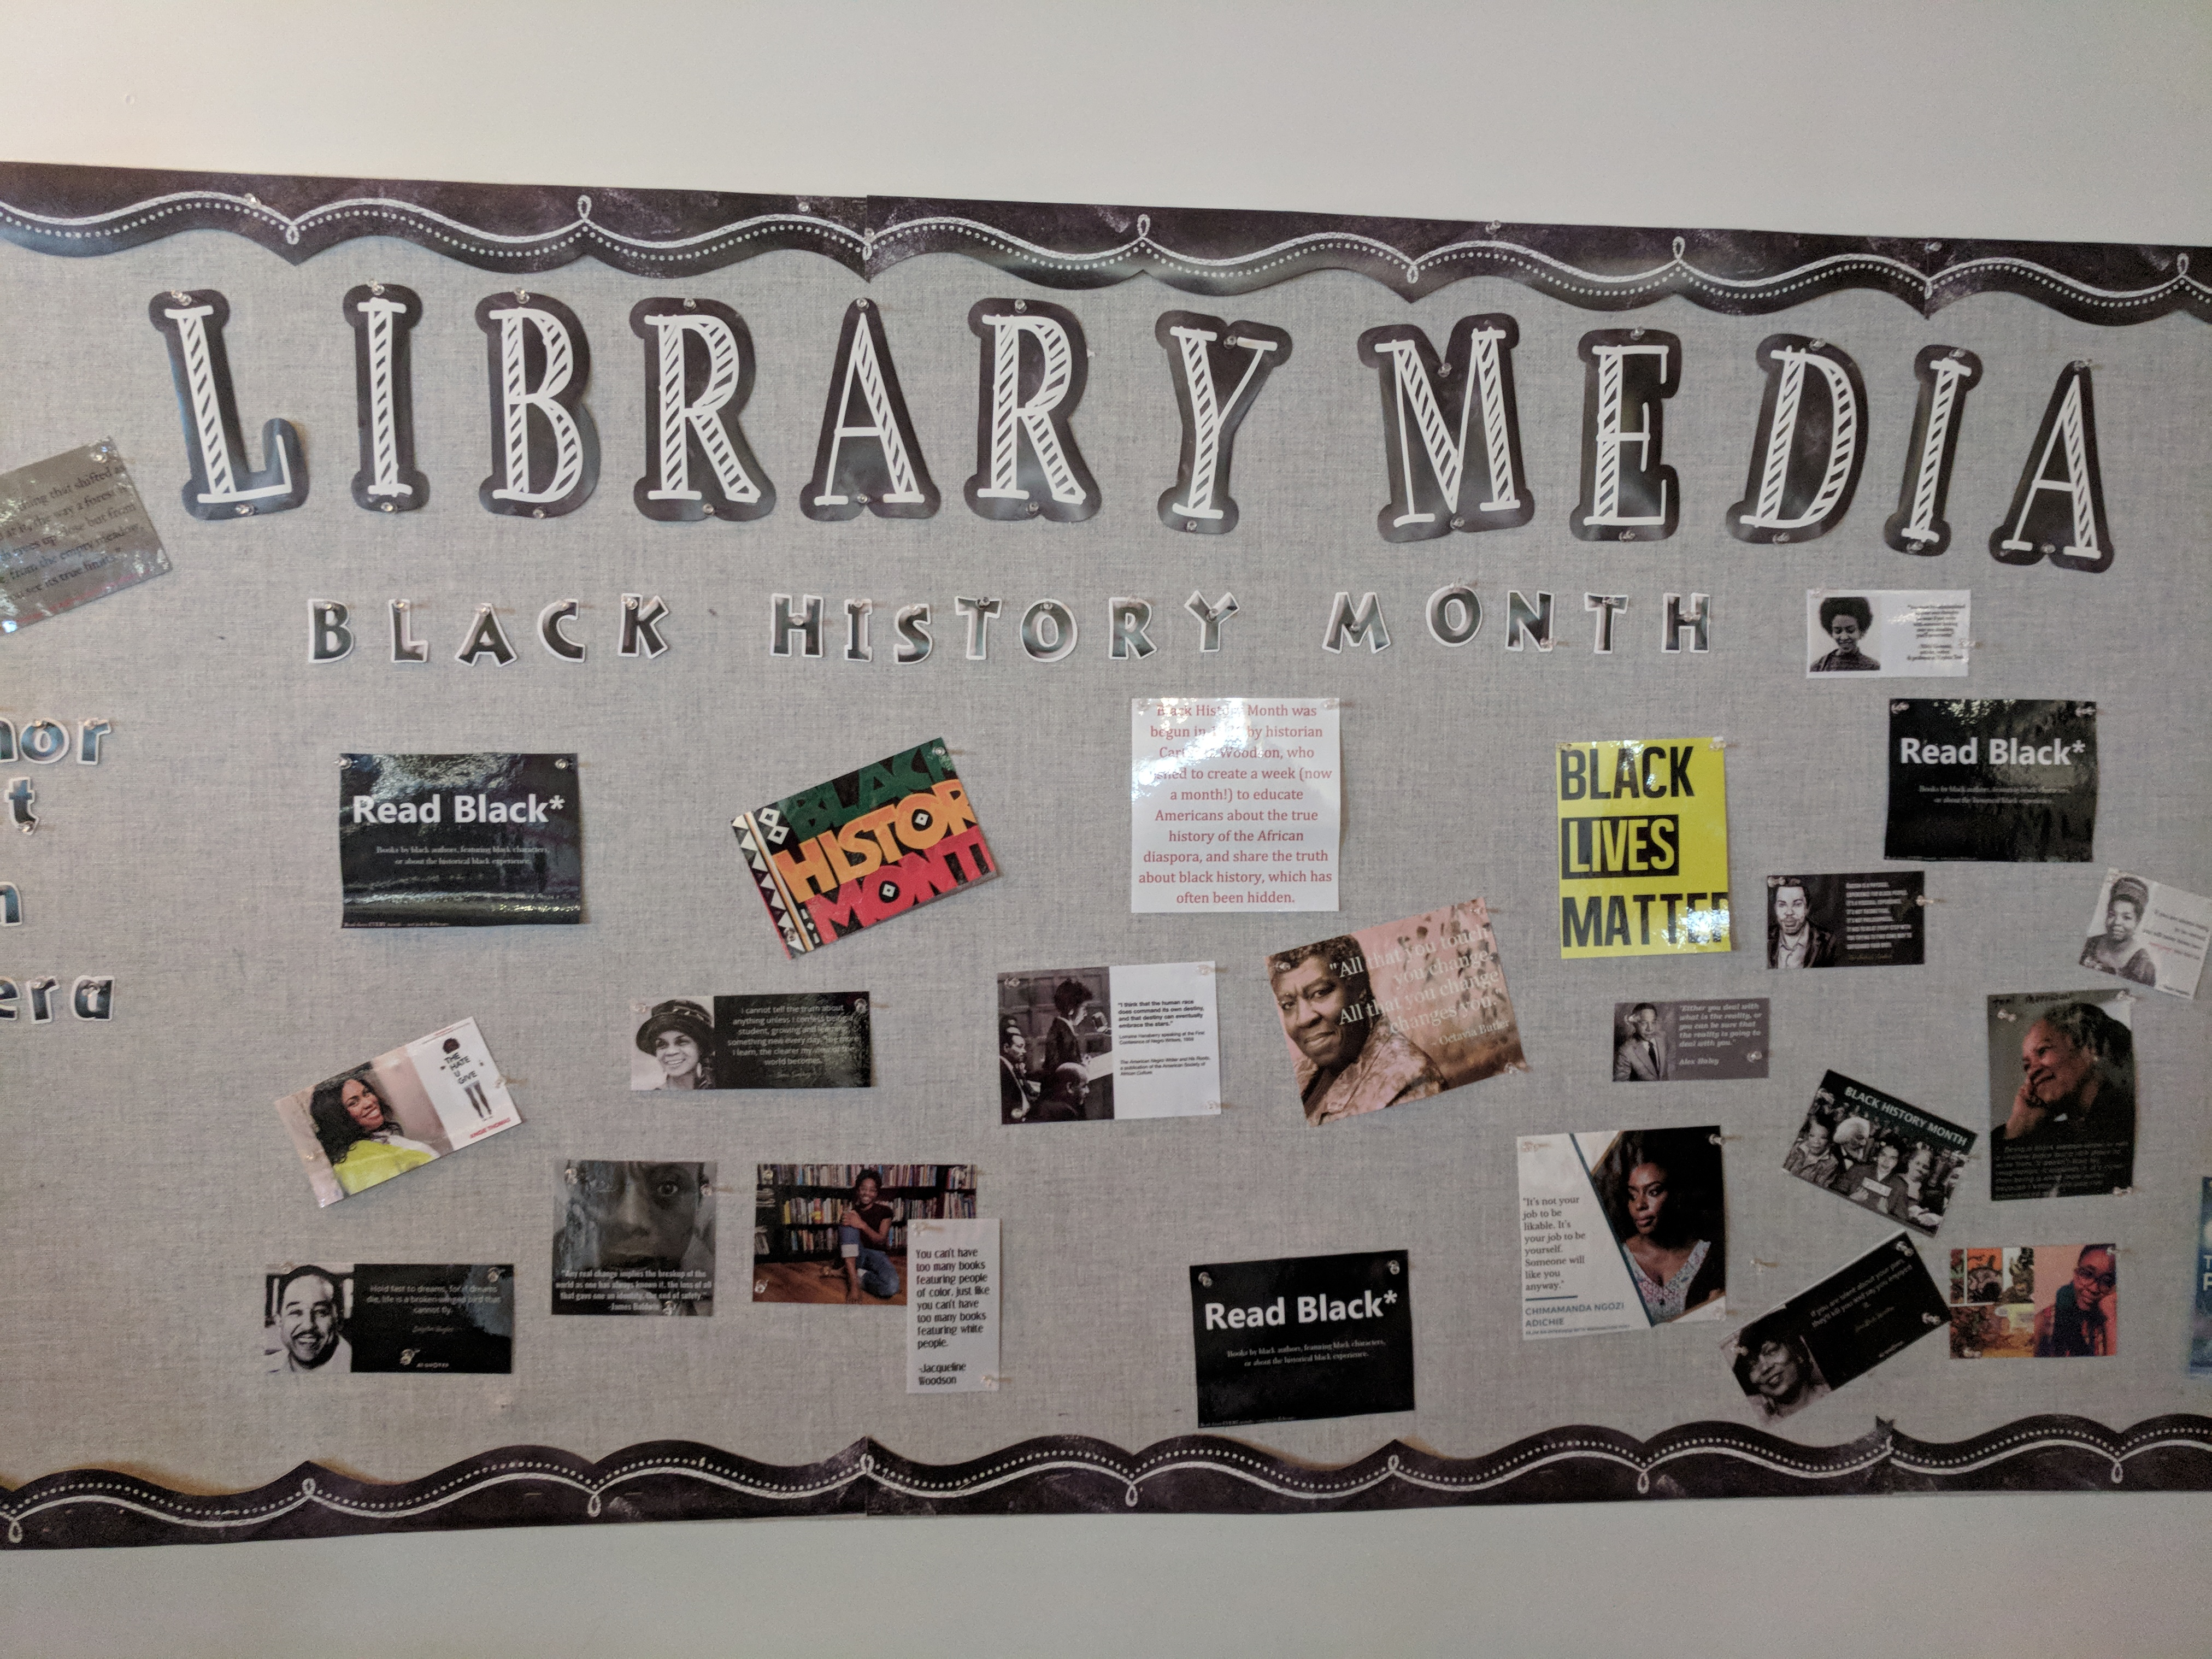 Black History Month: A Library Perspective